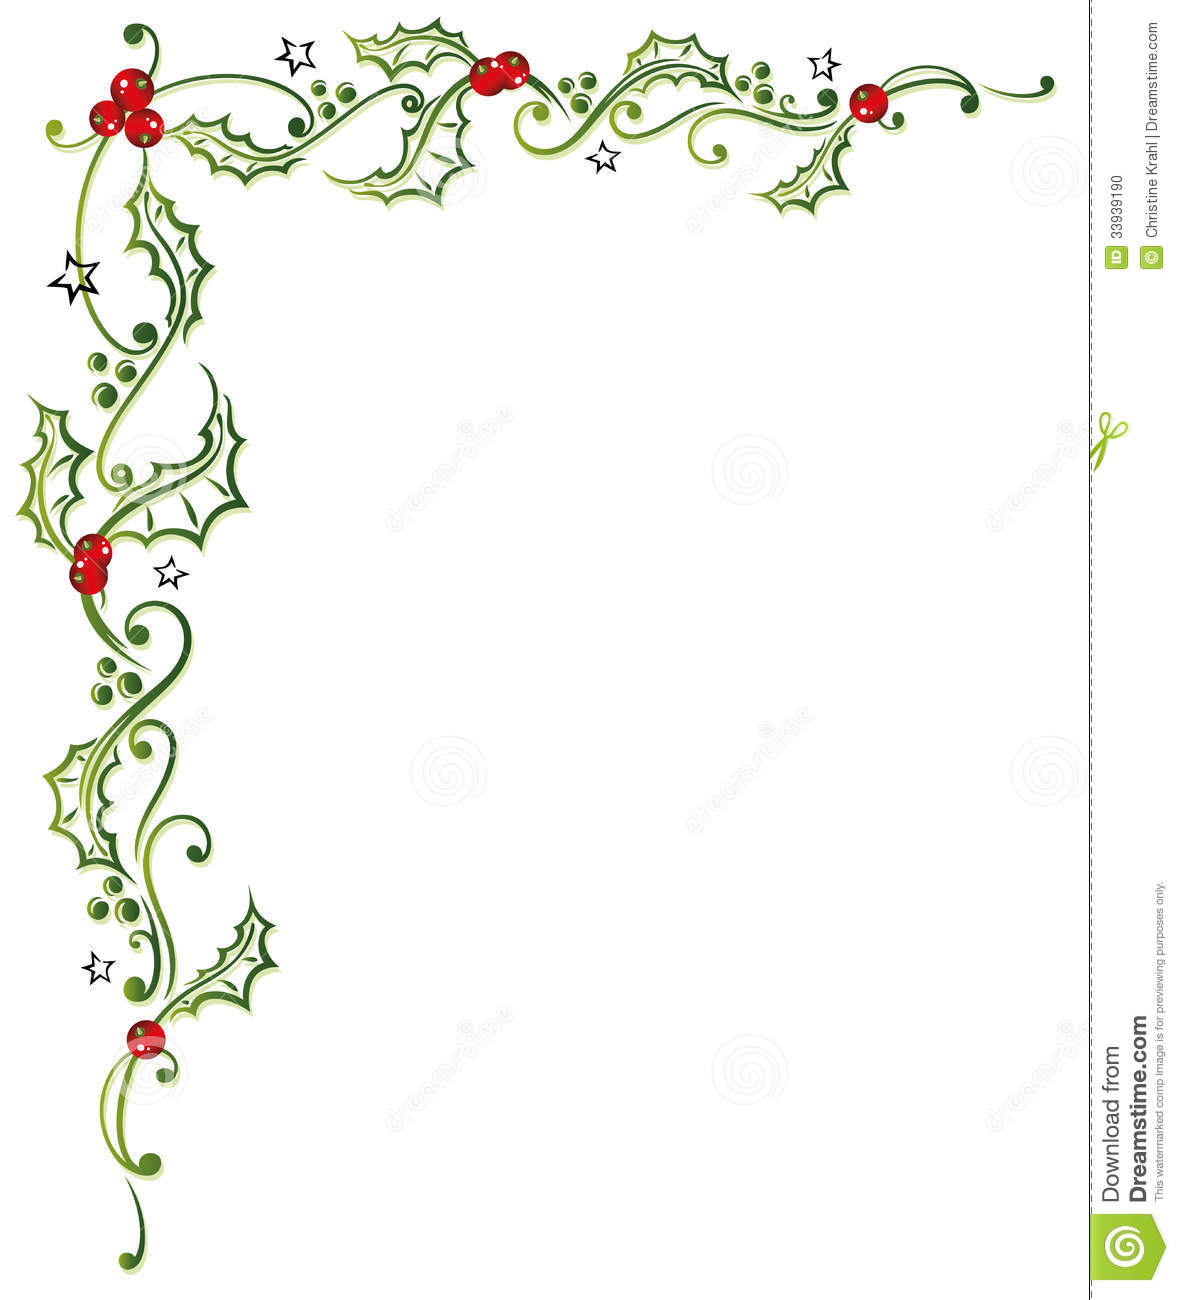 Christmas, Holly, Leaves Stock Photo - Image: 33939190